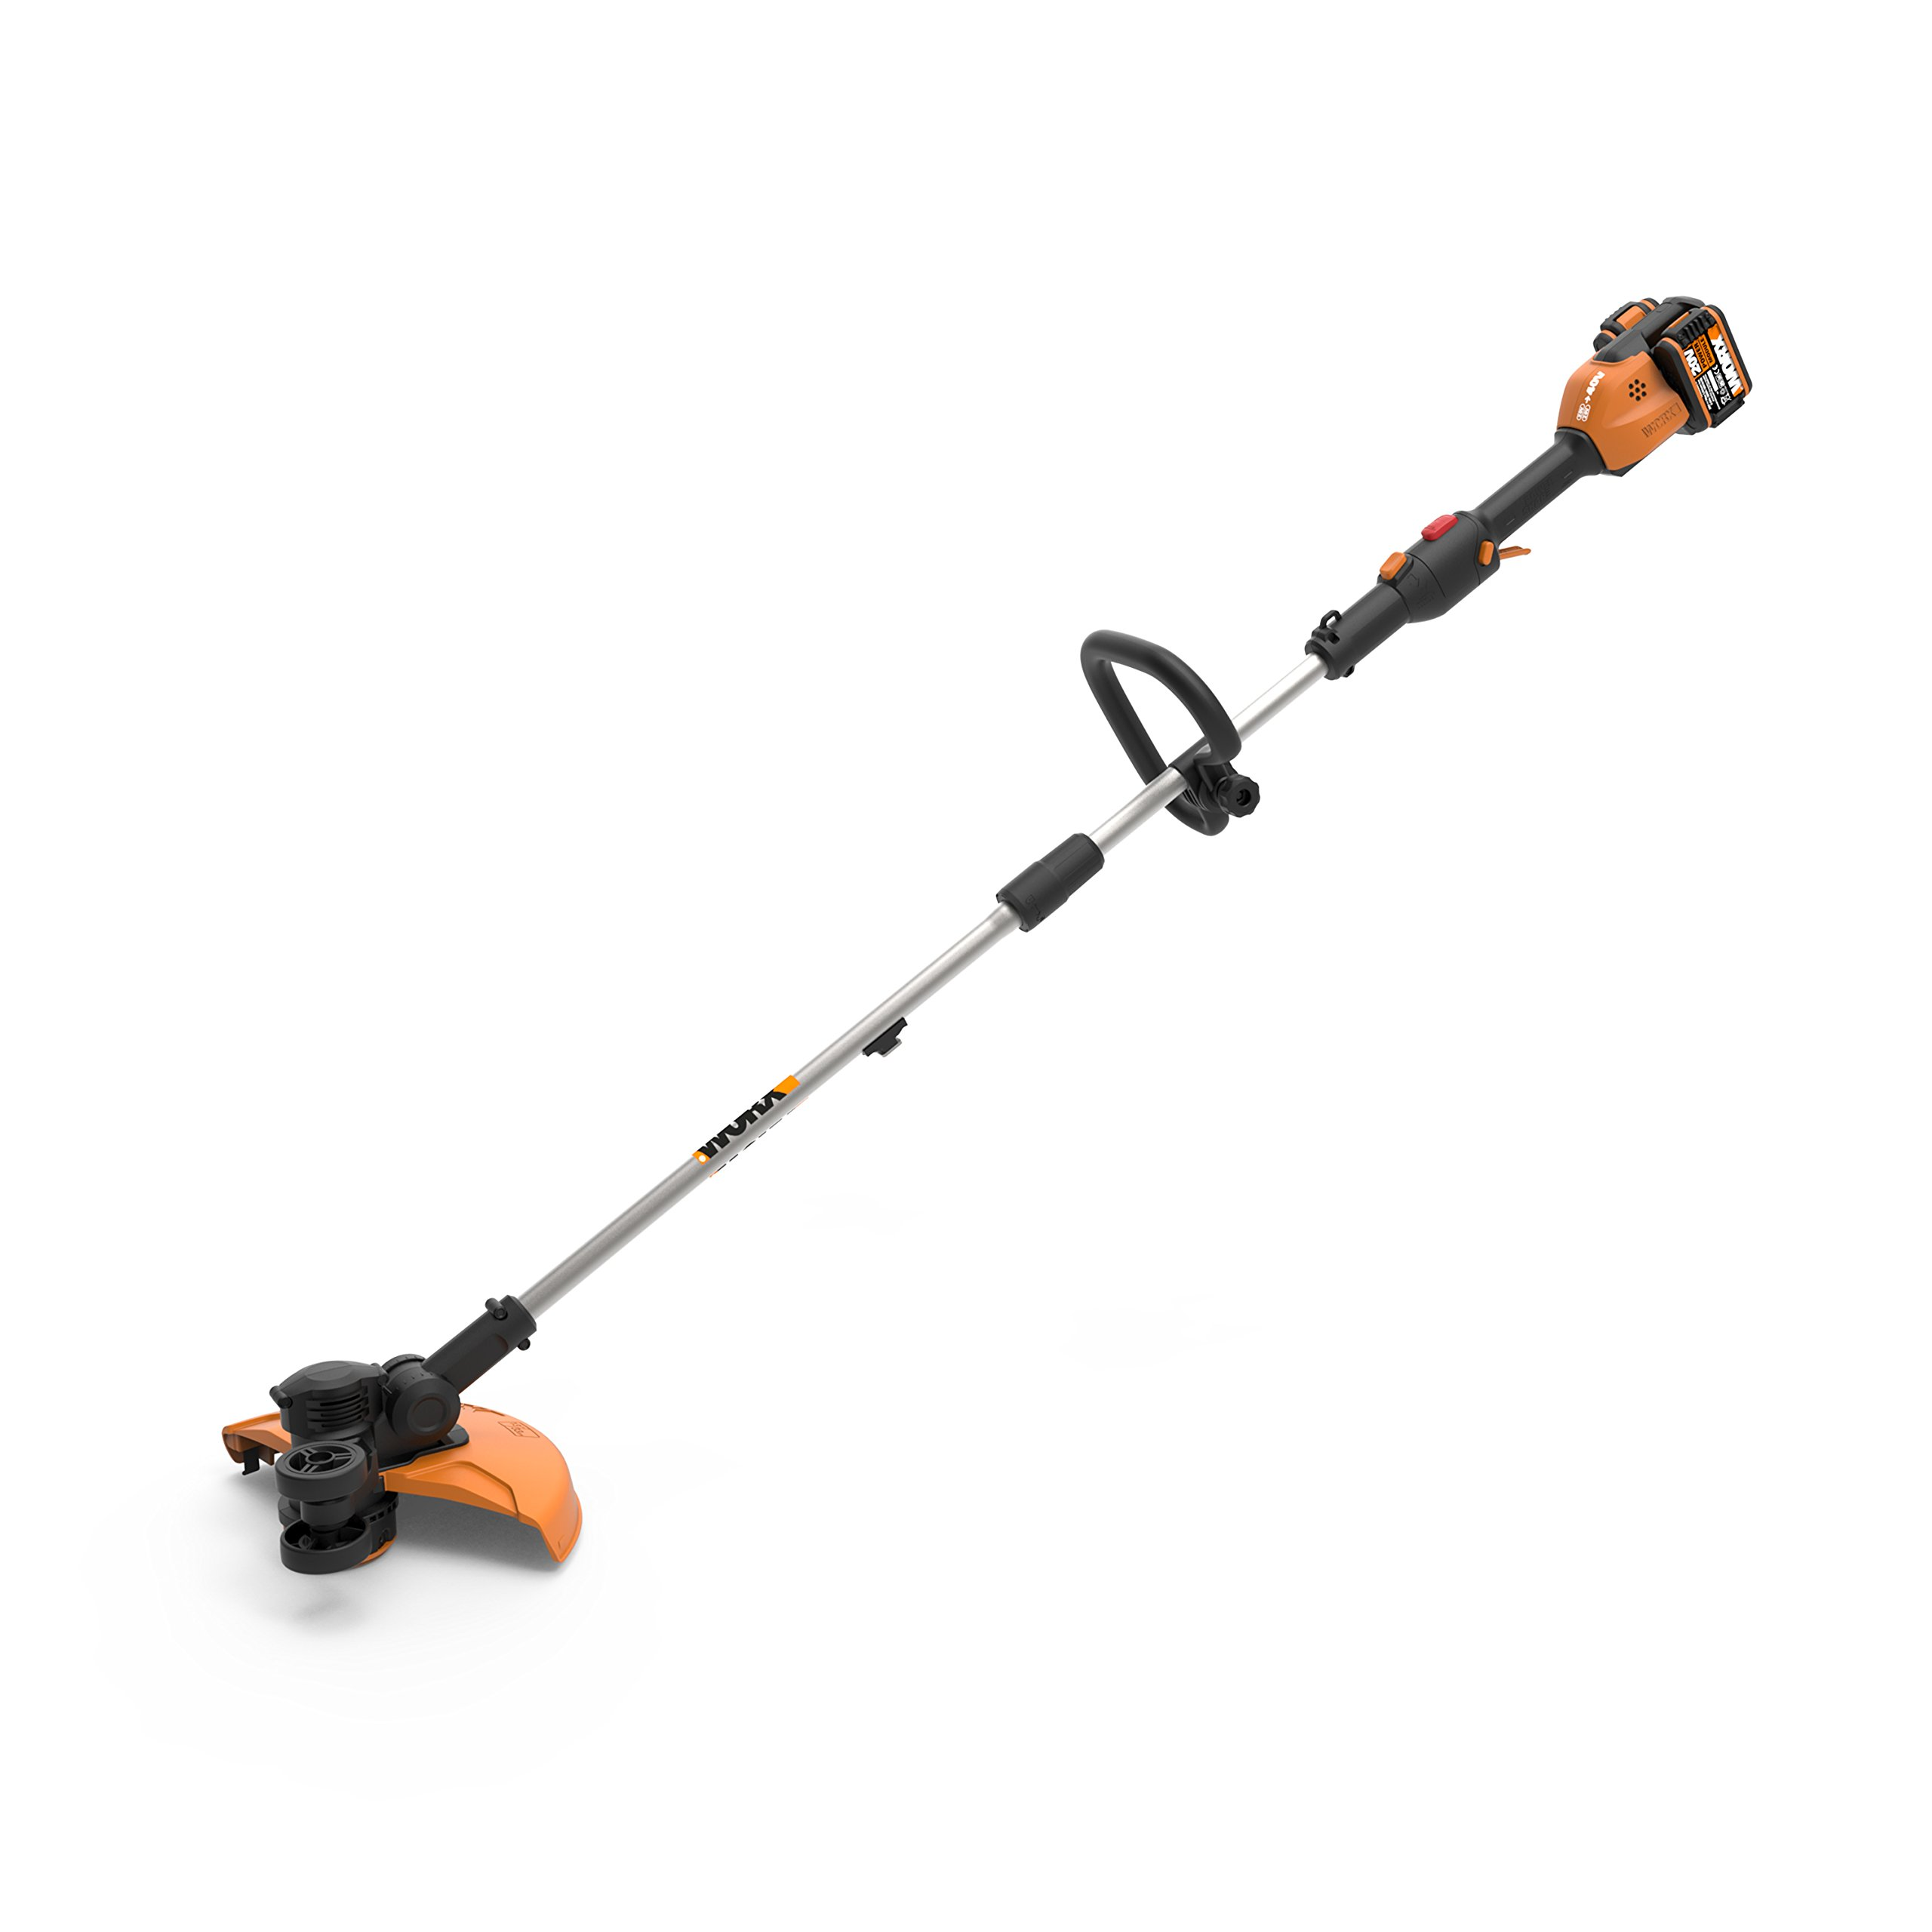 Worx WG184 2x20V (2.0Ah) 13'' Cordless Grass Trimmer/Edger with in-Line Edging, and Command Feed, 1 hr. Dual Charger, 2 Batteries